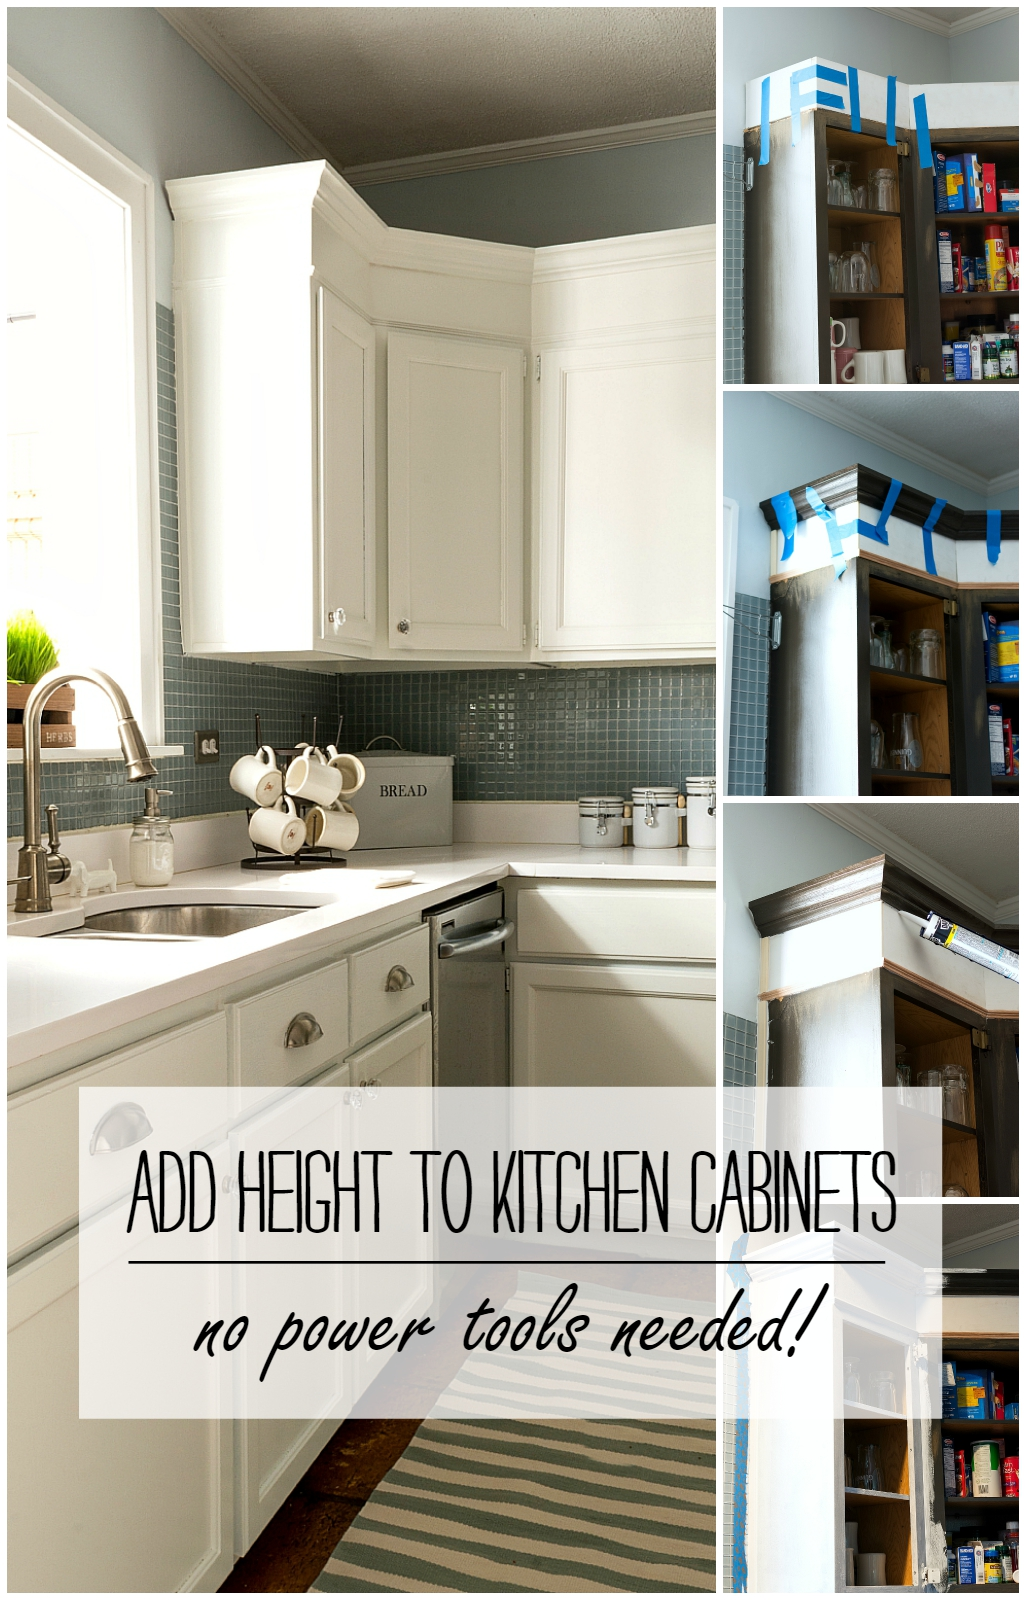 How To Add Height To Kitchen Cabinets - No Power Tools Needed